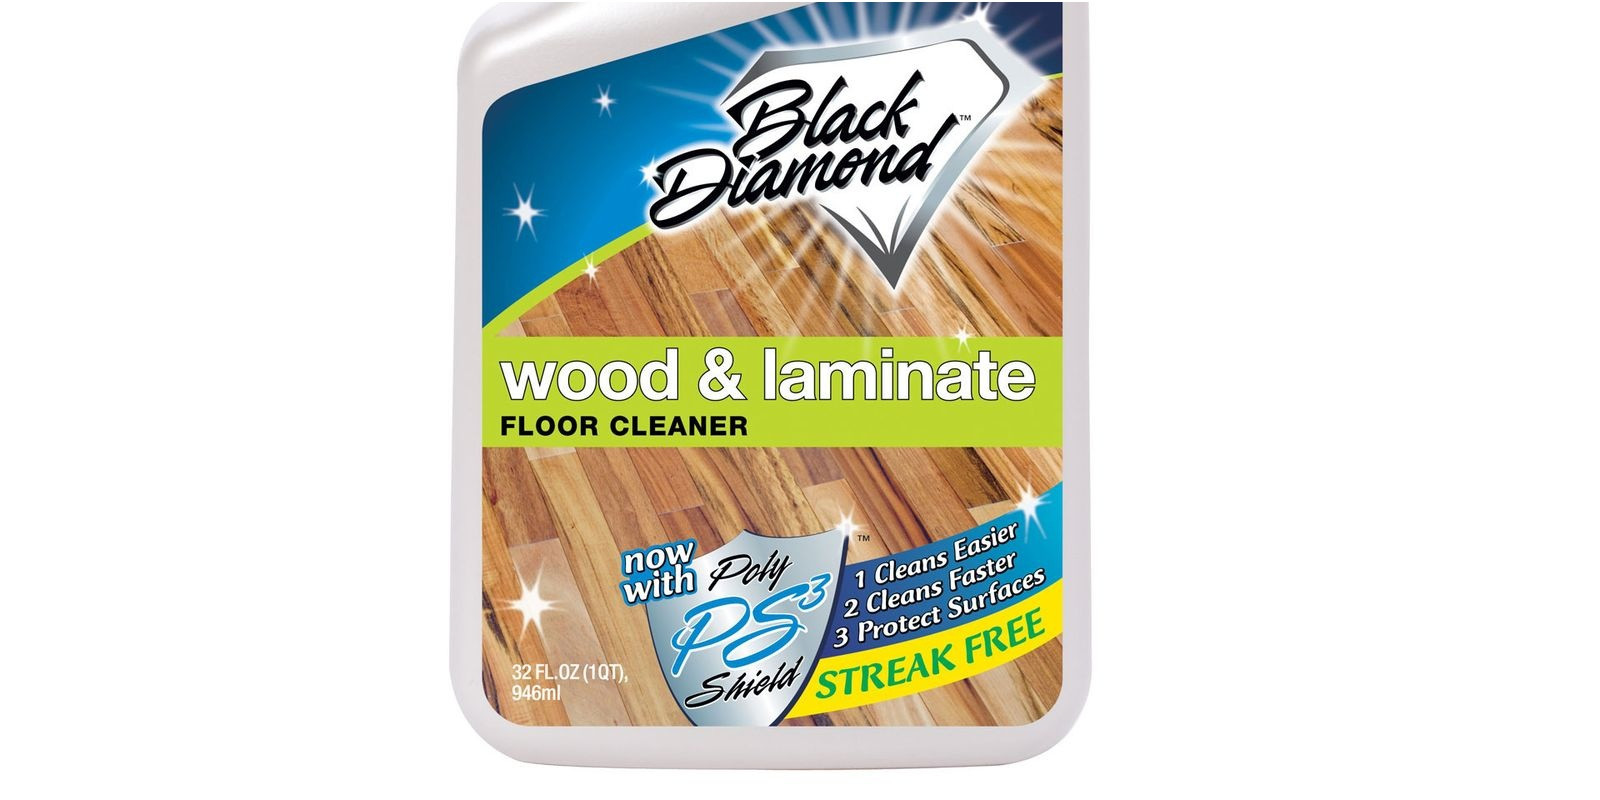 bruce hardwood floor cleaner mop of how to take care of laminate flooring flooring design regarding how to take care of laminate flooring unique floor black diamondod and laminate floor cleaner review